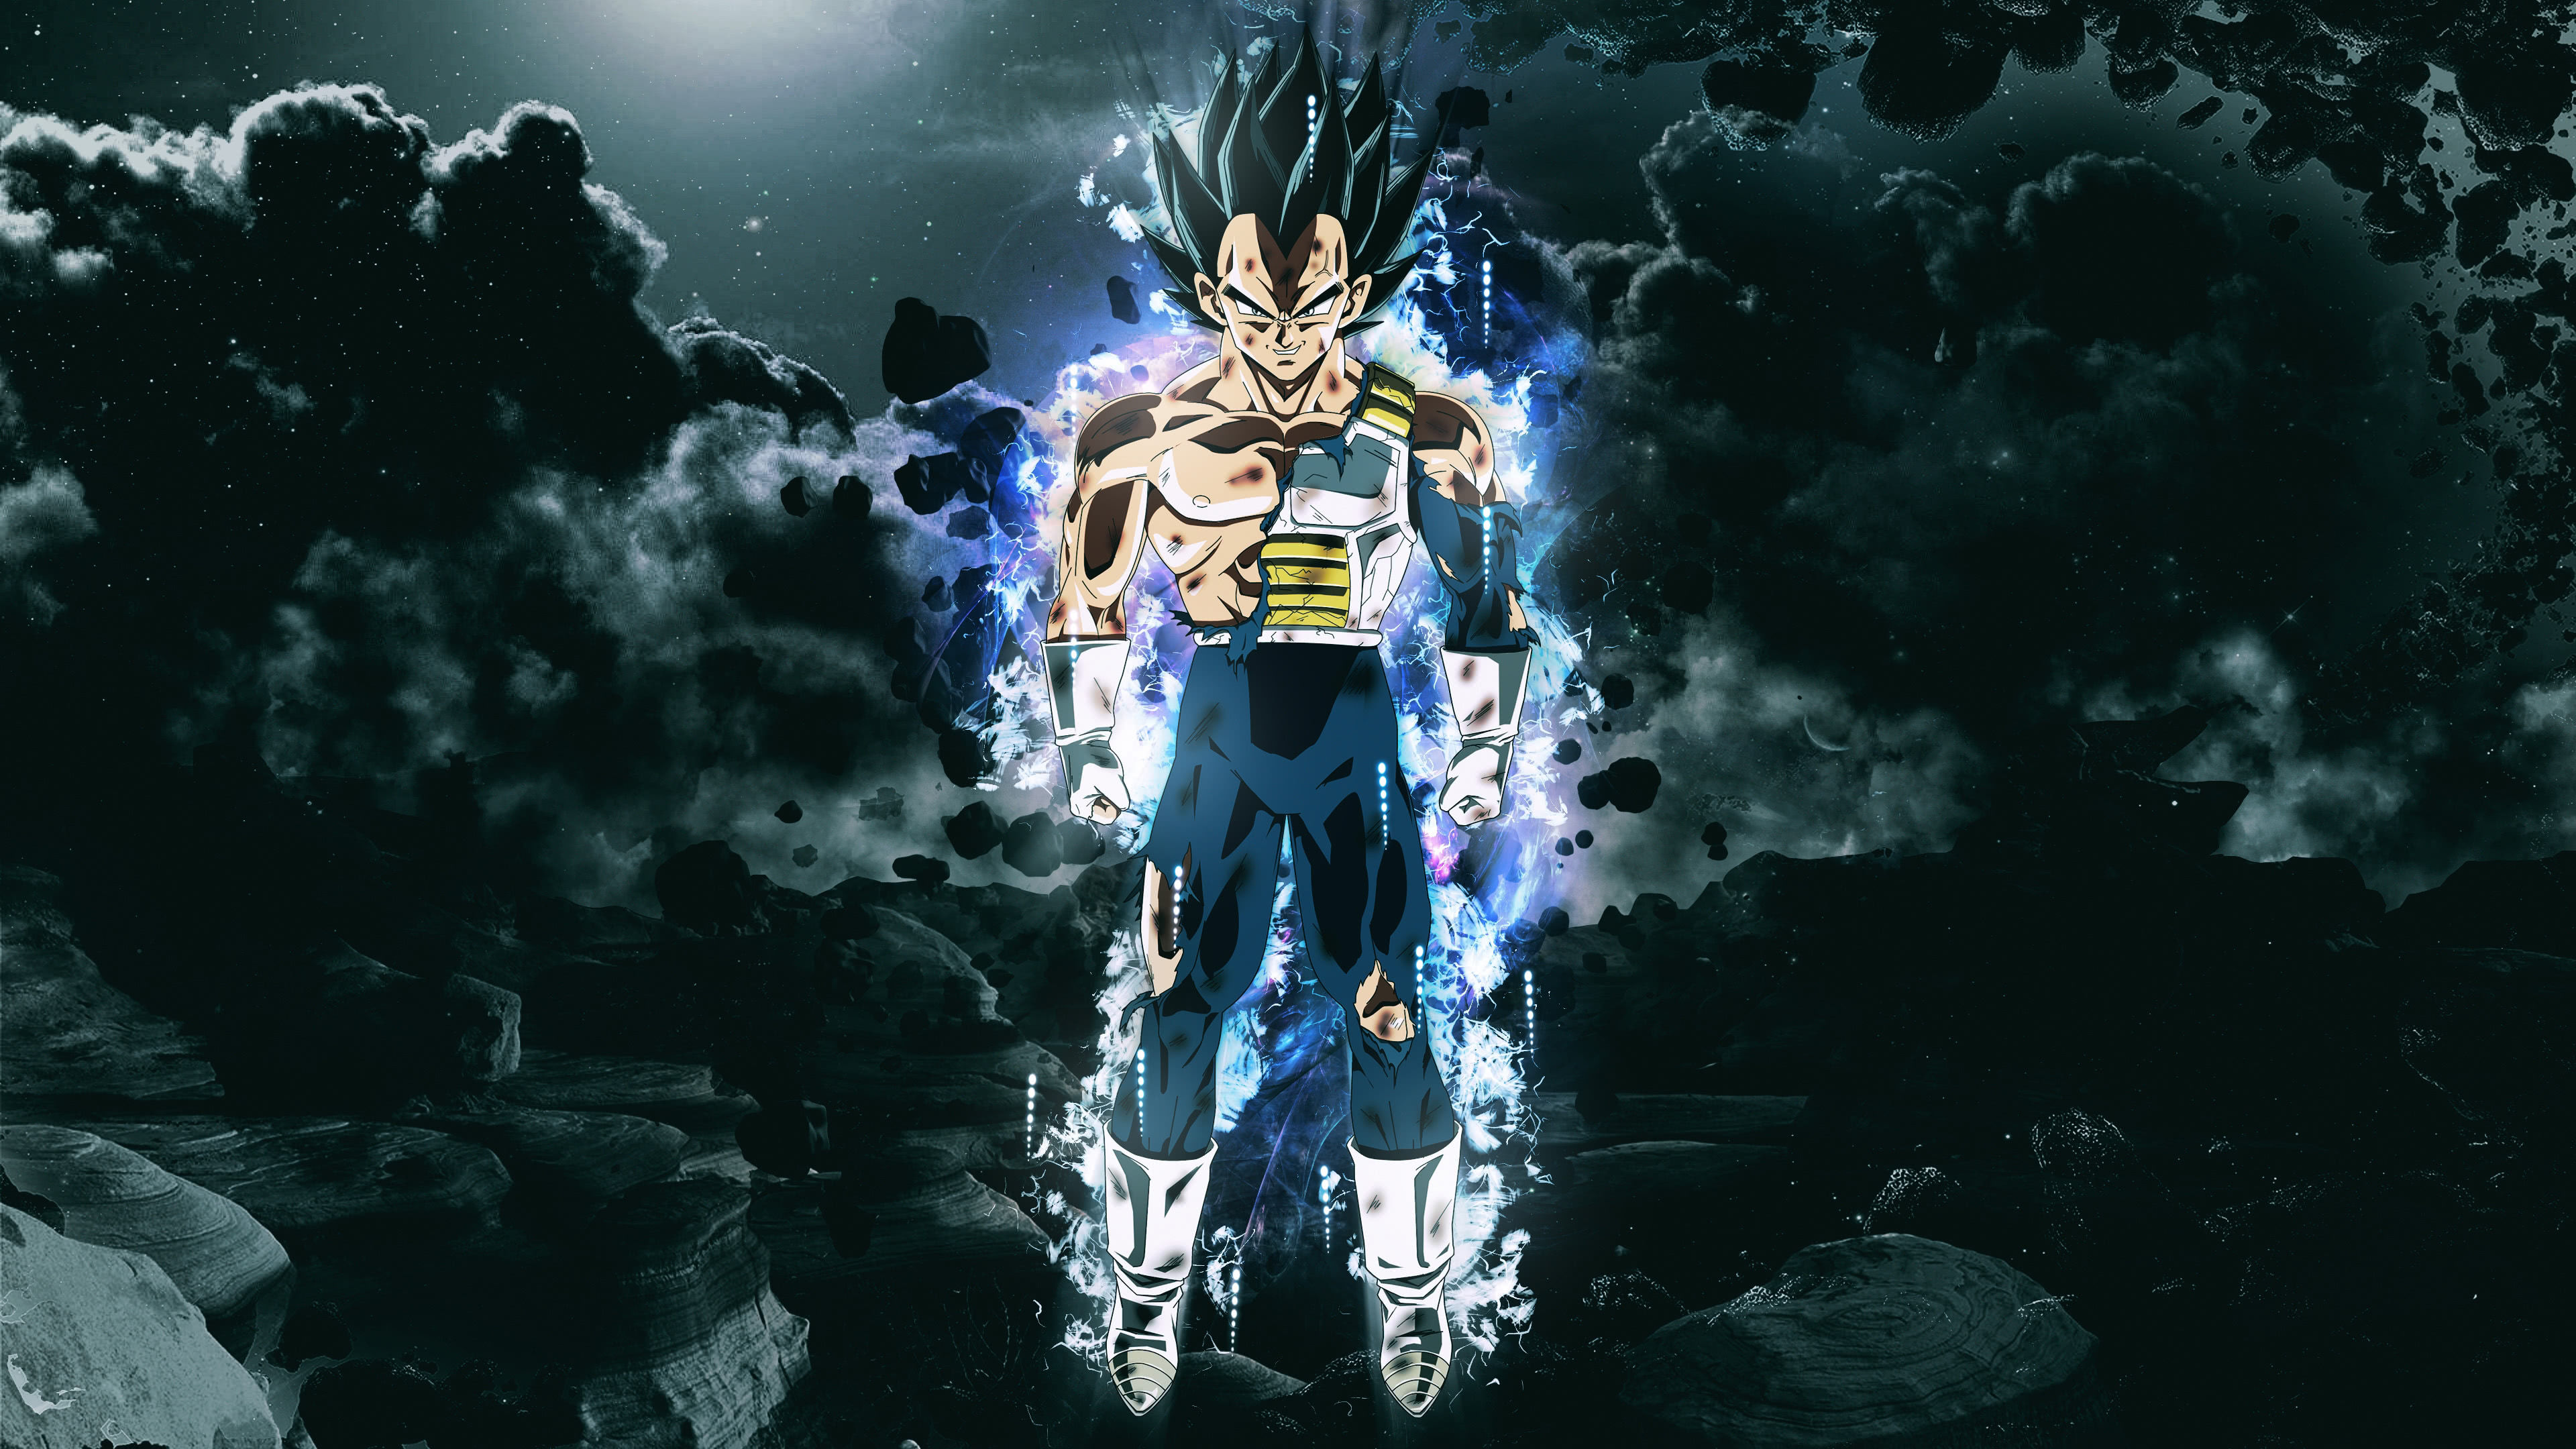 Dragon Ball Super Vegeta Uhd 4k Wallpaper Pixelz